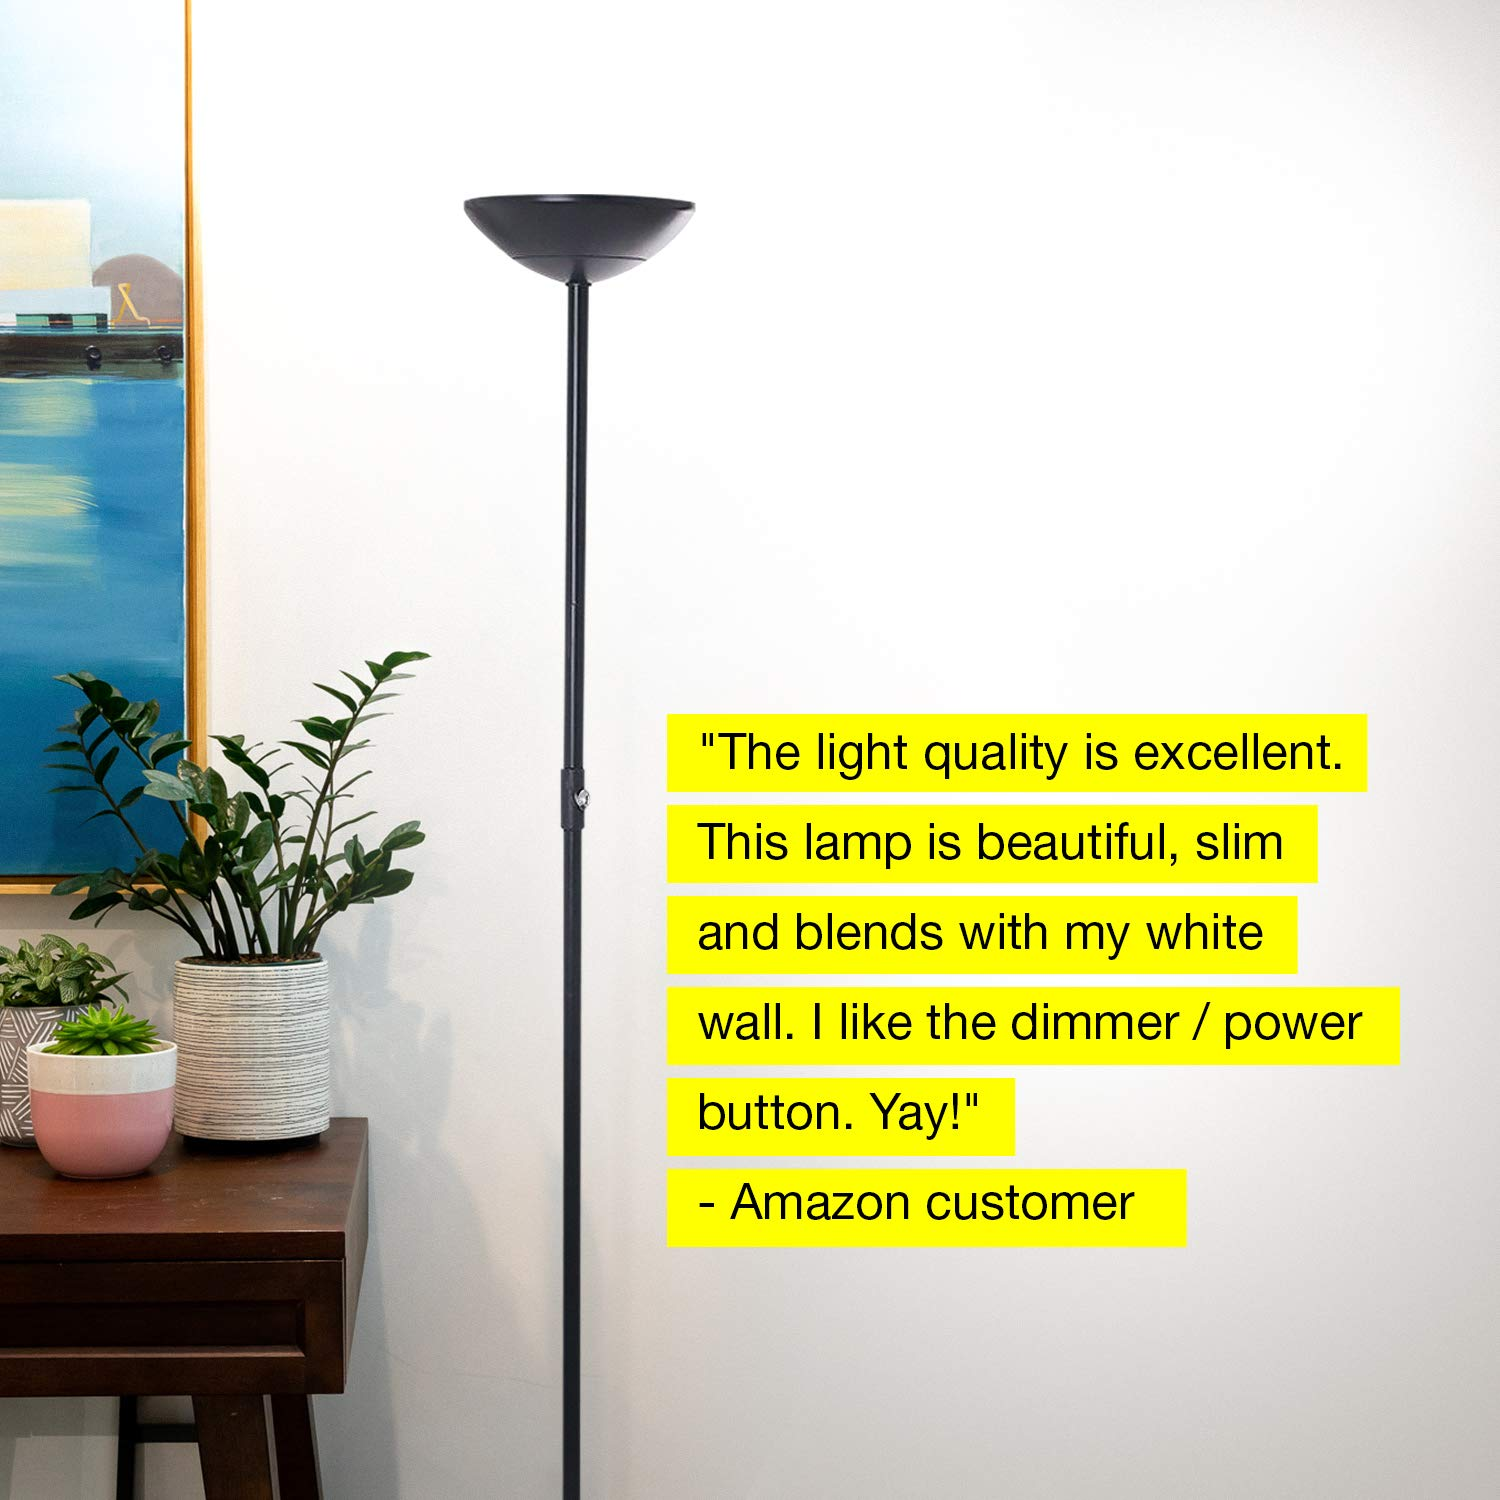 Brightech SkyLite - Bright LED Torchiere Floor Lamp for Offices - Modern, Dimmable Reading Light for Living Rooms & Bedrooms - Tall Standing Pole Light - Jet Black by Brightech (Image #7)